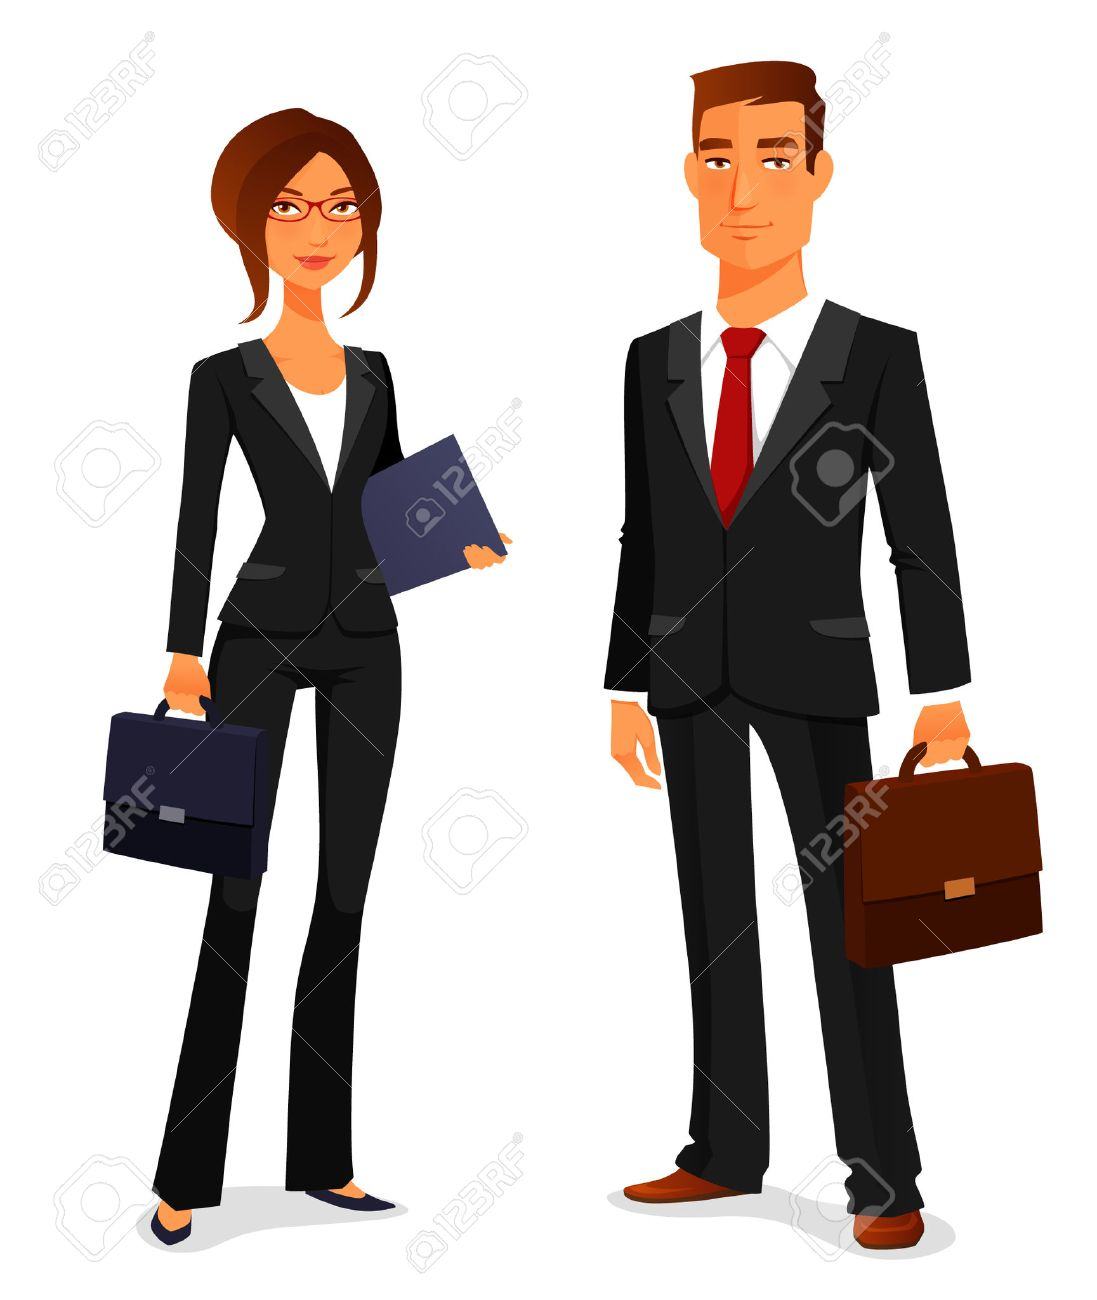 young man and woman in elegant business suit.